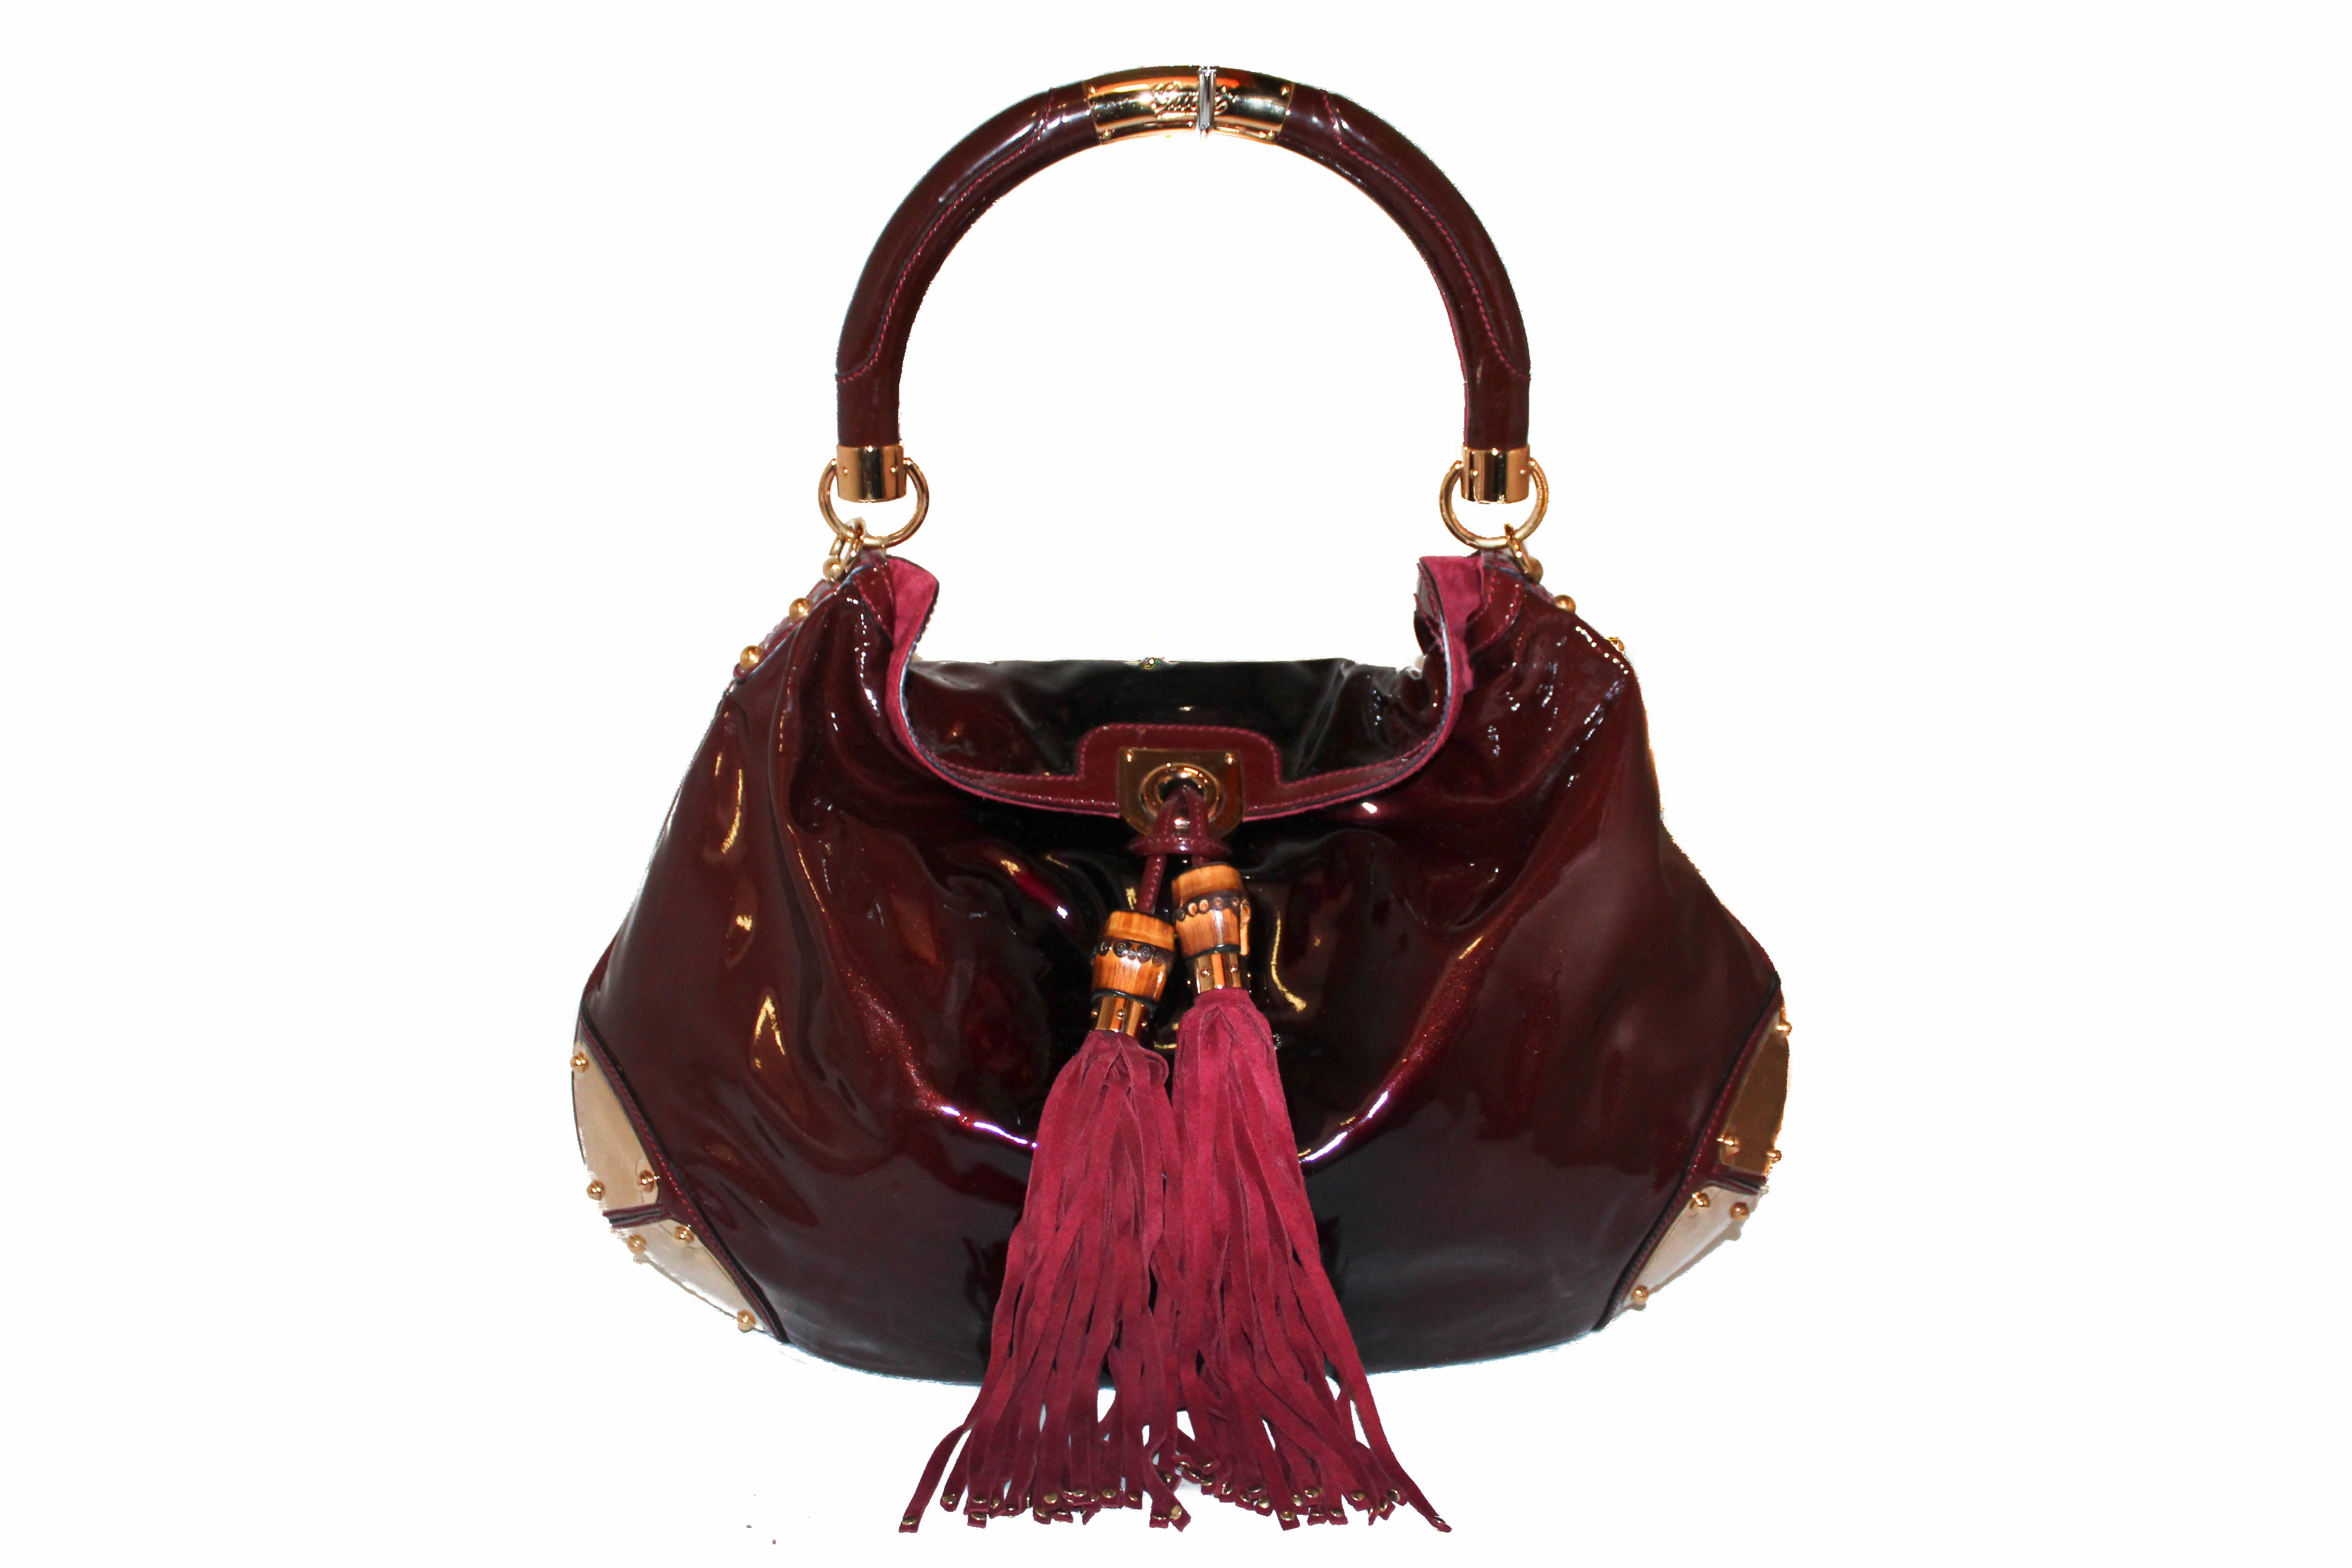 Authentic Gucci Burgundy Patent Leather Babouska Shoulder Tote Bag